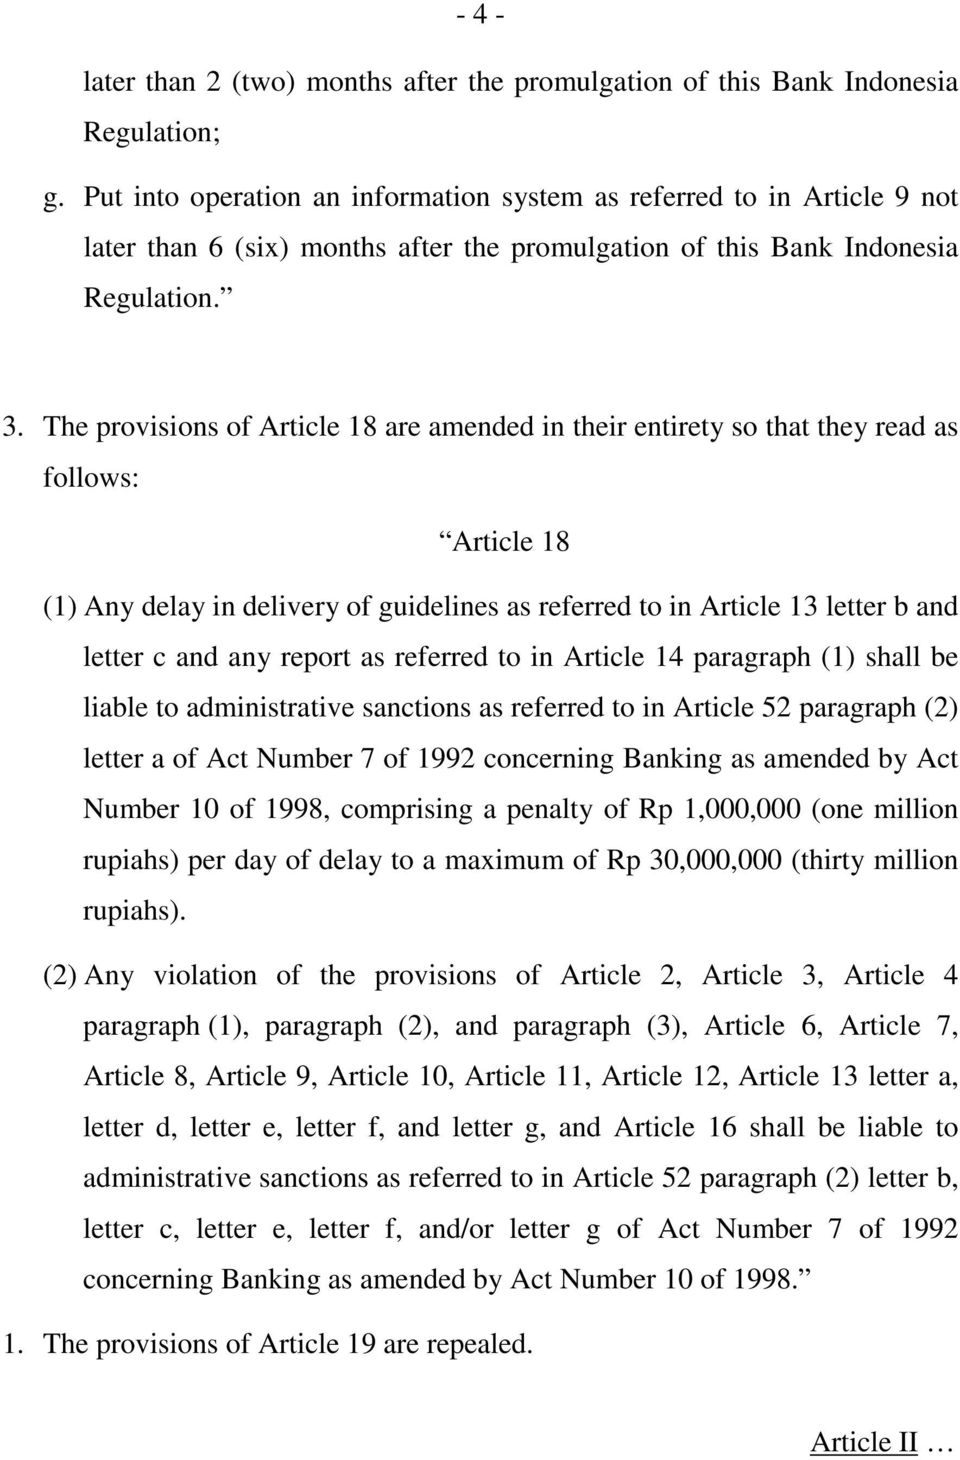 The provisions of Article 18 are amended in their entirety so that they read as follows: Article 18 (1) Any delay in delivery of guidelines as referred to in Article 13 letter b and letter c and any